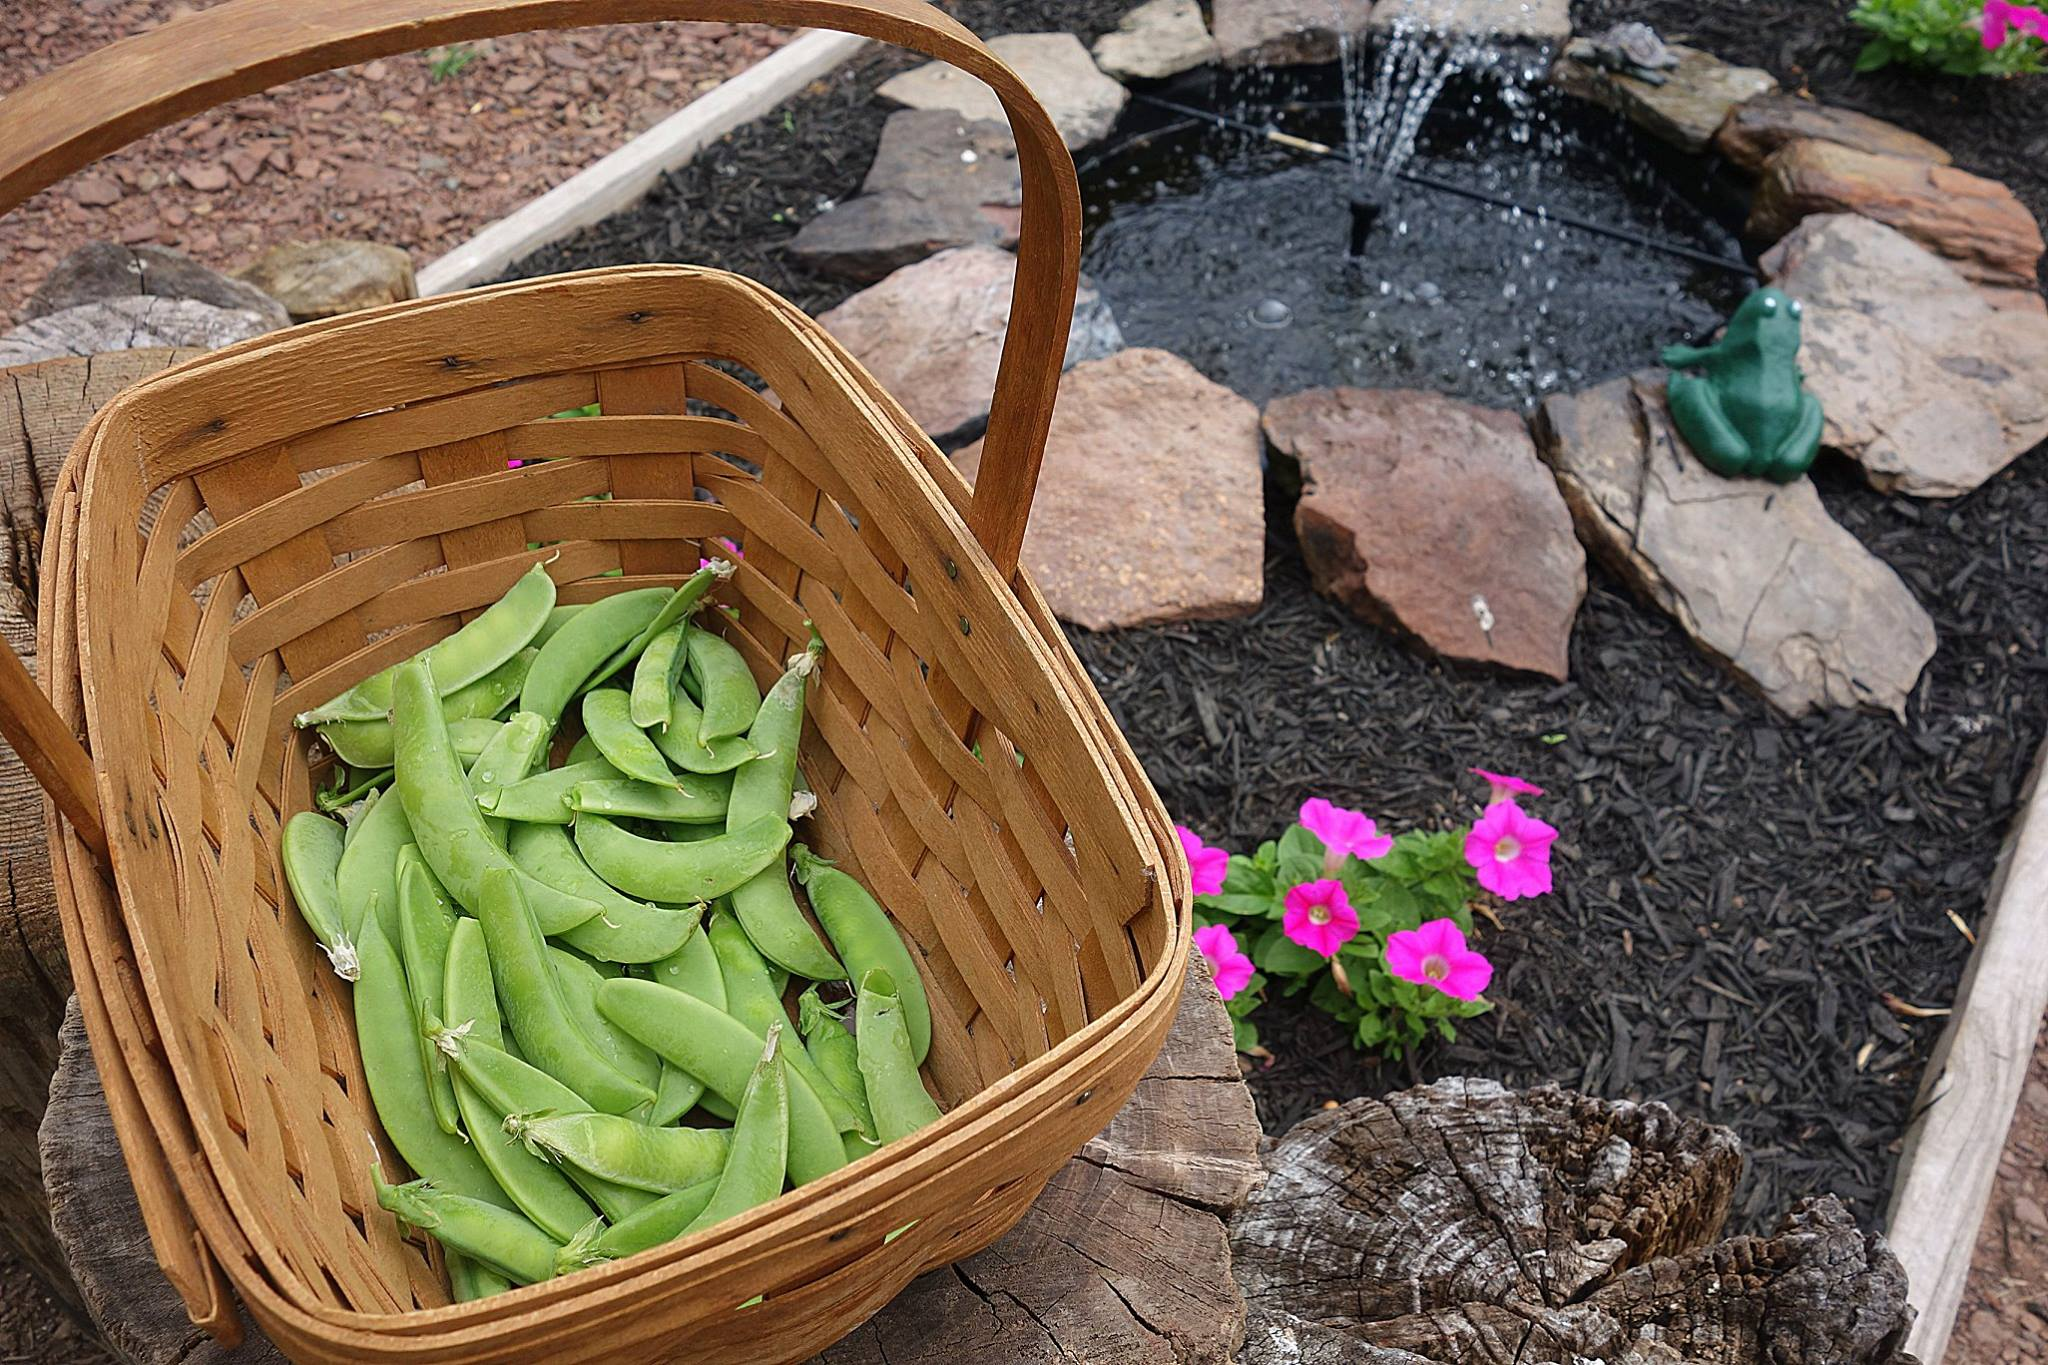 pea-pods-picked-from-my-garden-plant-based-protein